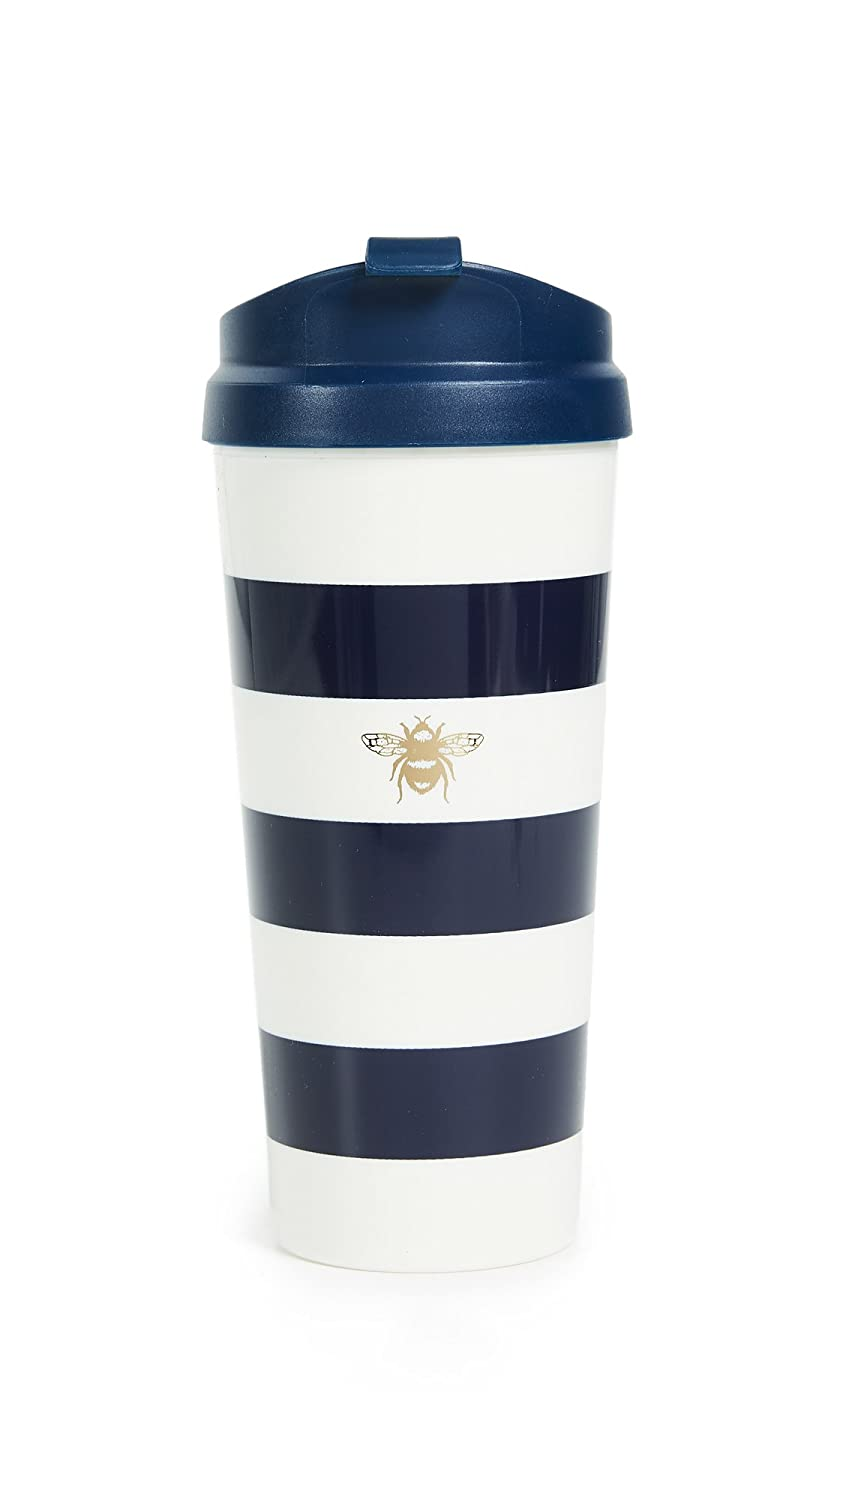 Kate Spade New York Insulated Thermal Travel Mug Tumbler, 16 Ounces, Navy Stripe (Bee)